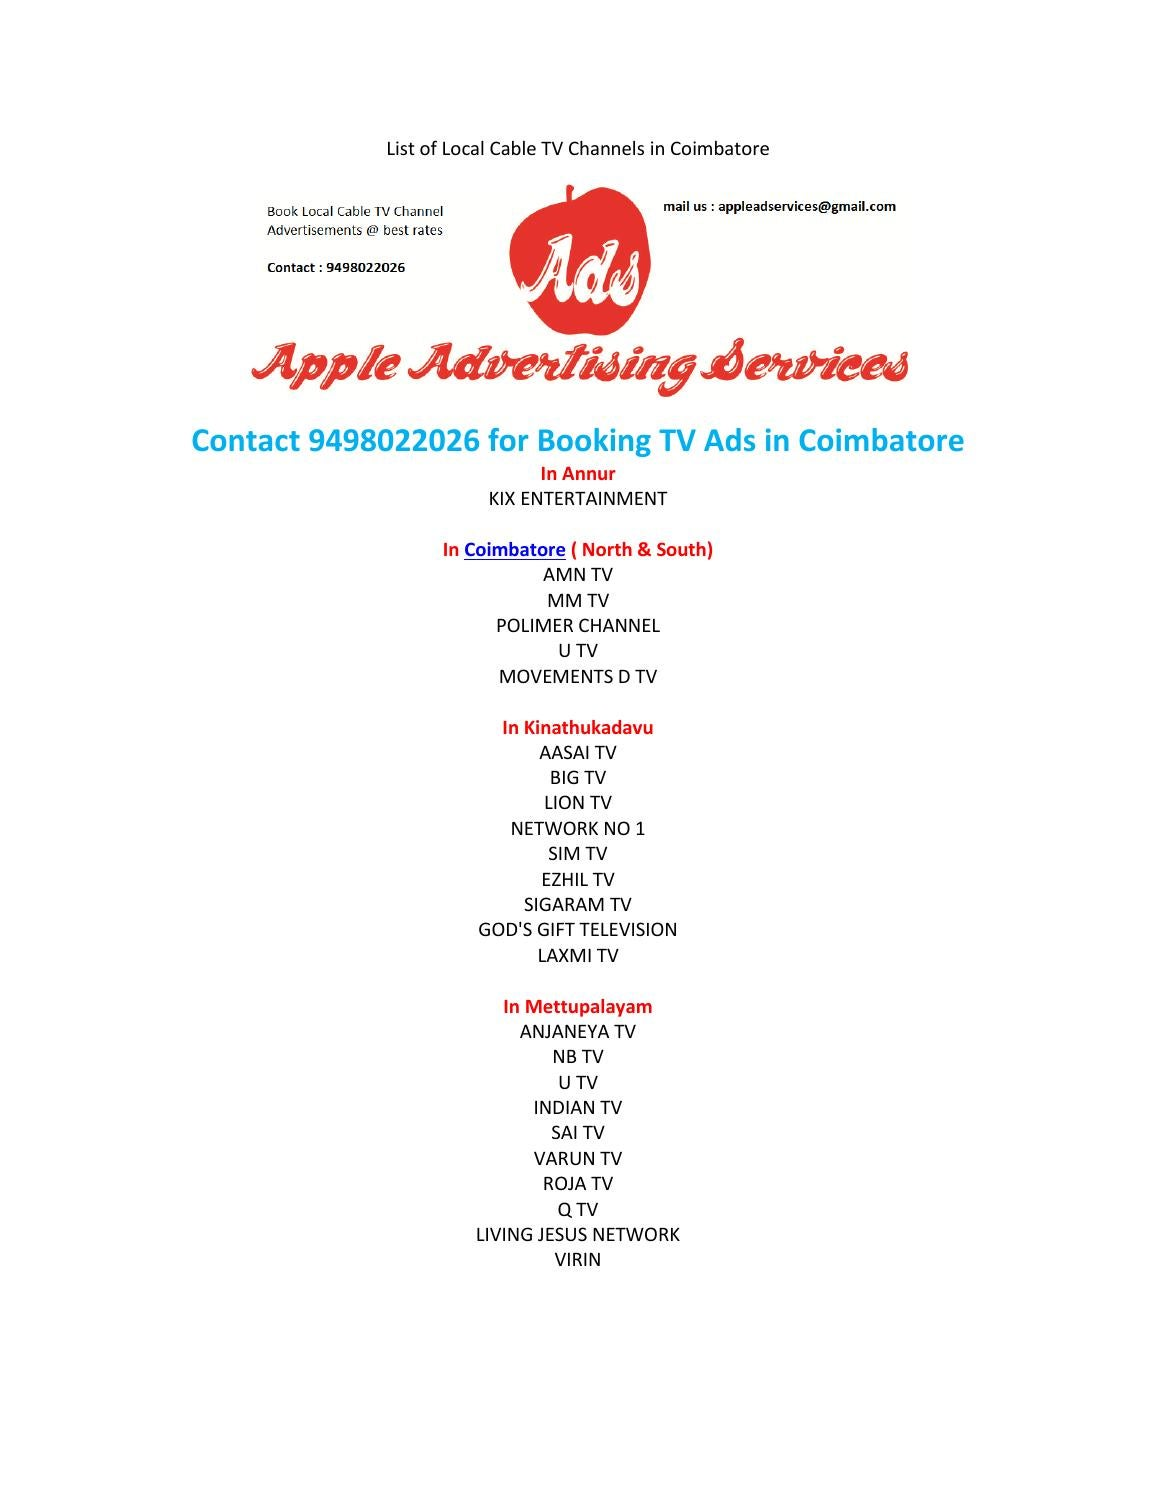 List Of Local Cable Tv Channels In Coimbatore By Apple